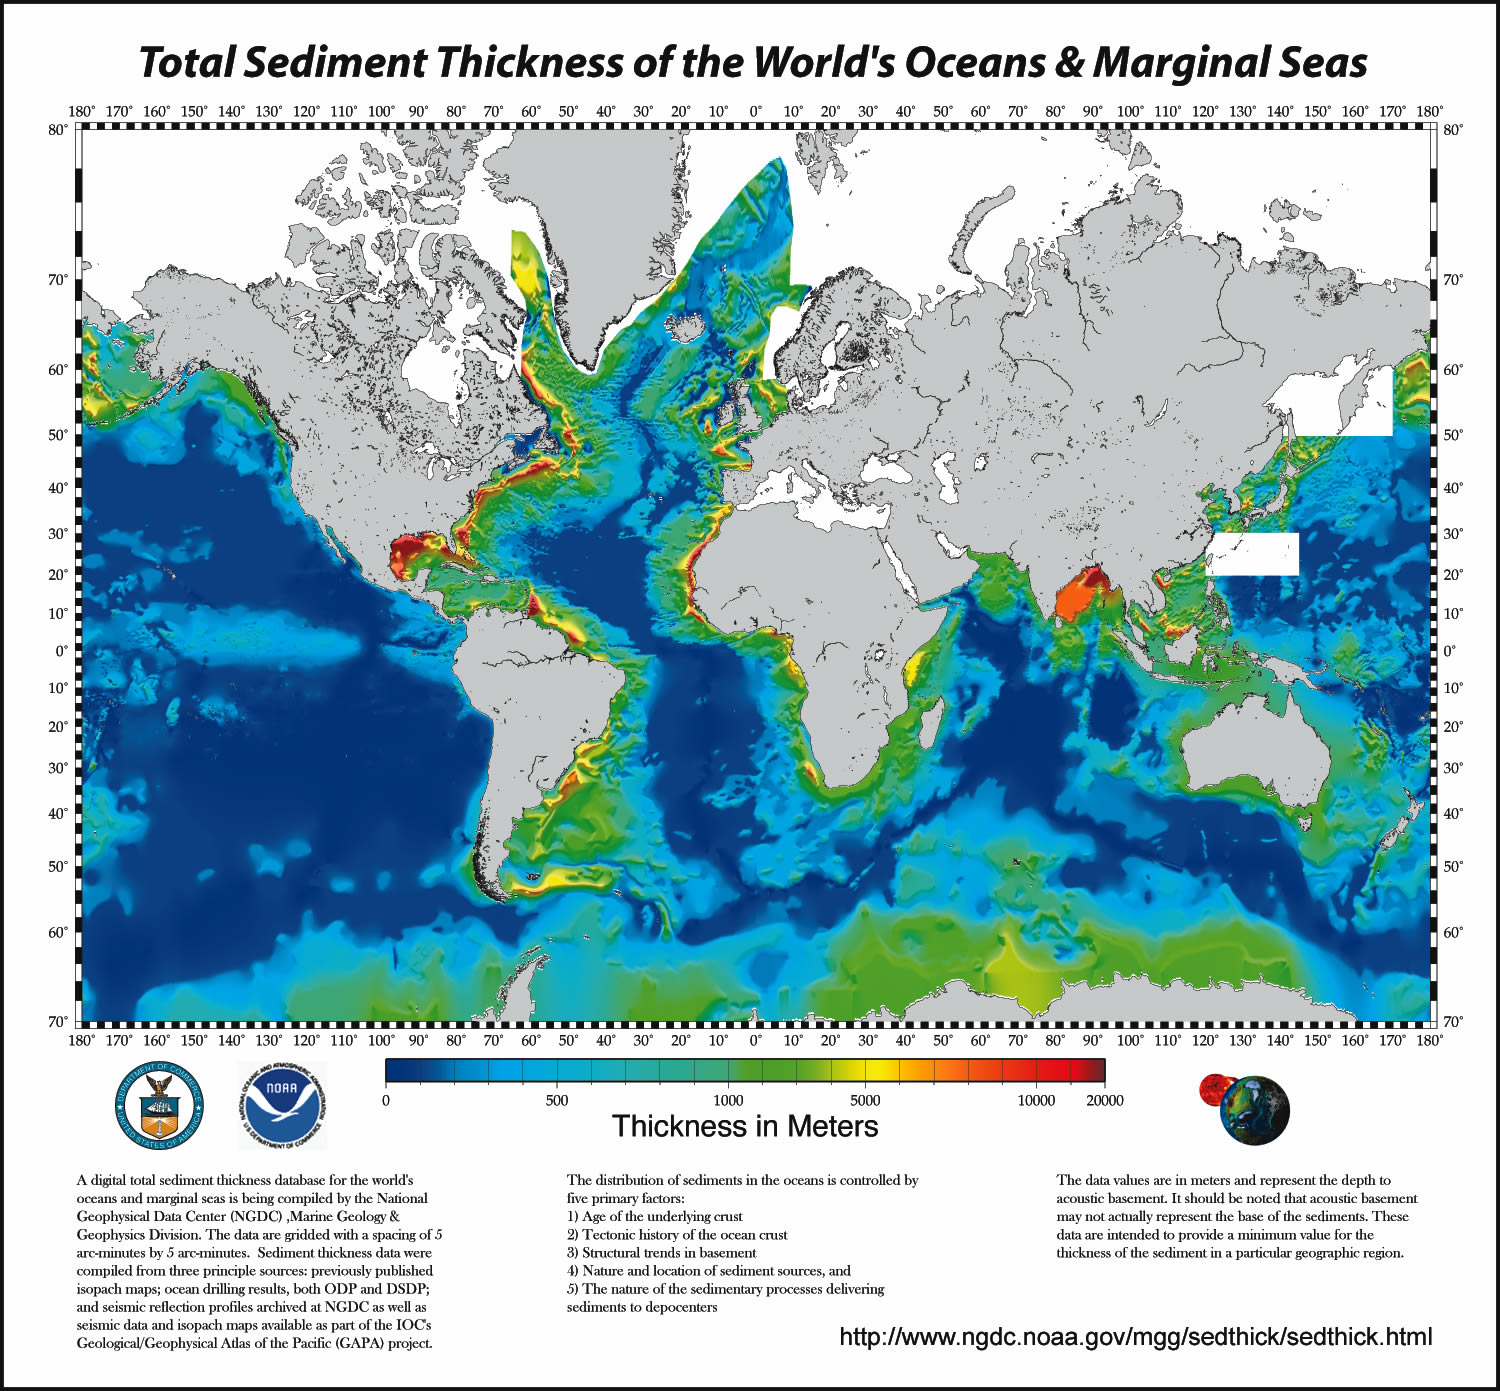 Figure 4.10 Map of global sediment thickness. [Source: NOAA, http://1.usa.gov/1Ywxxz6]